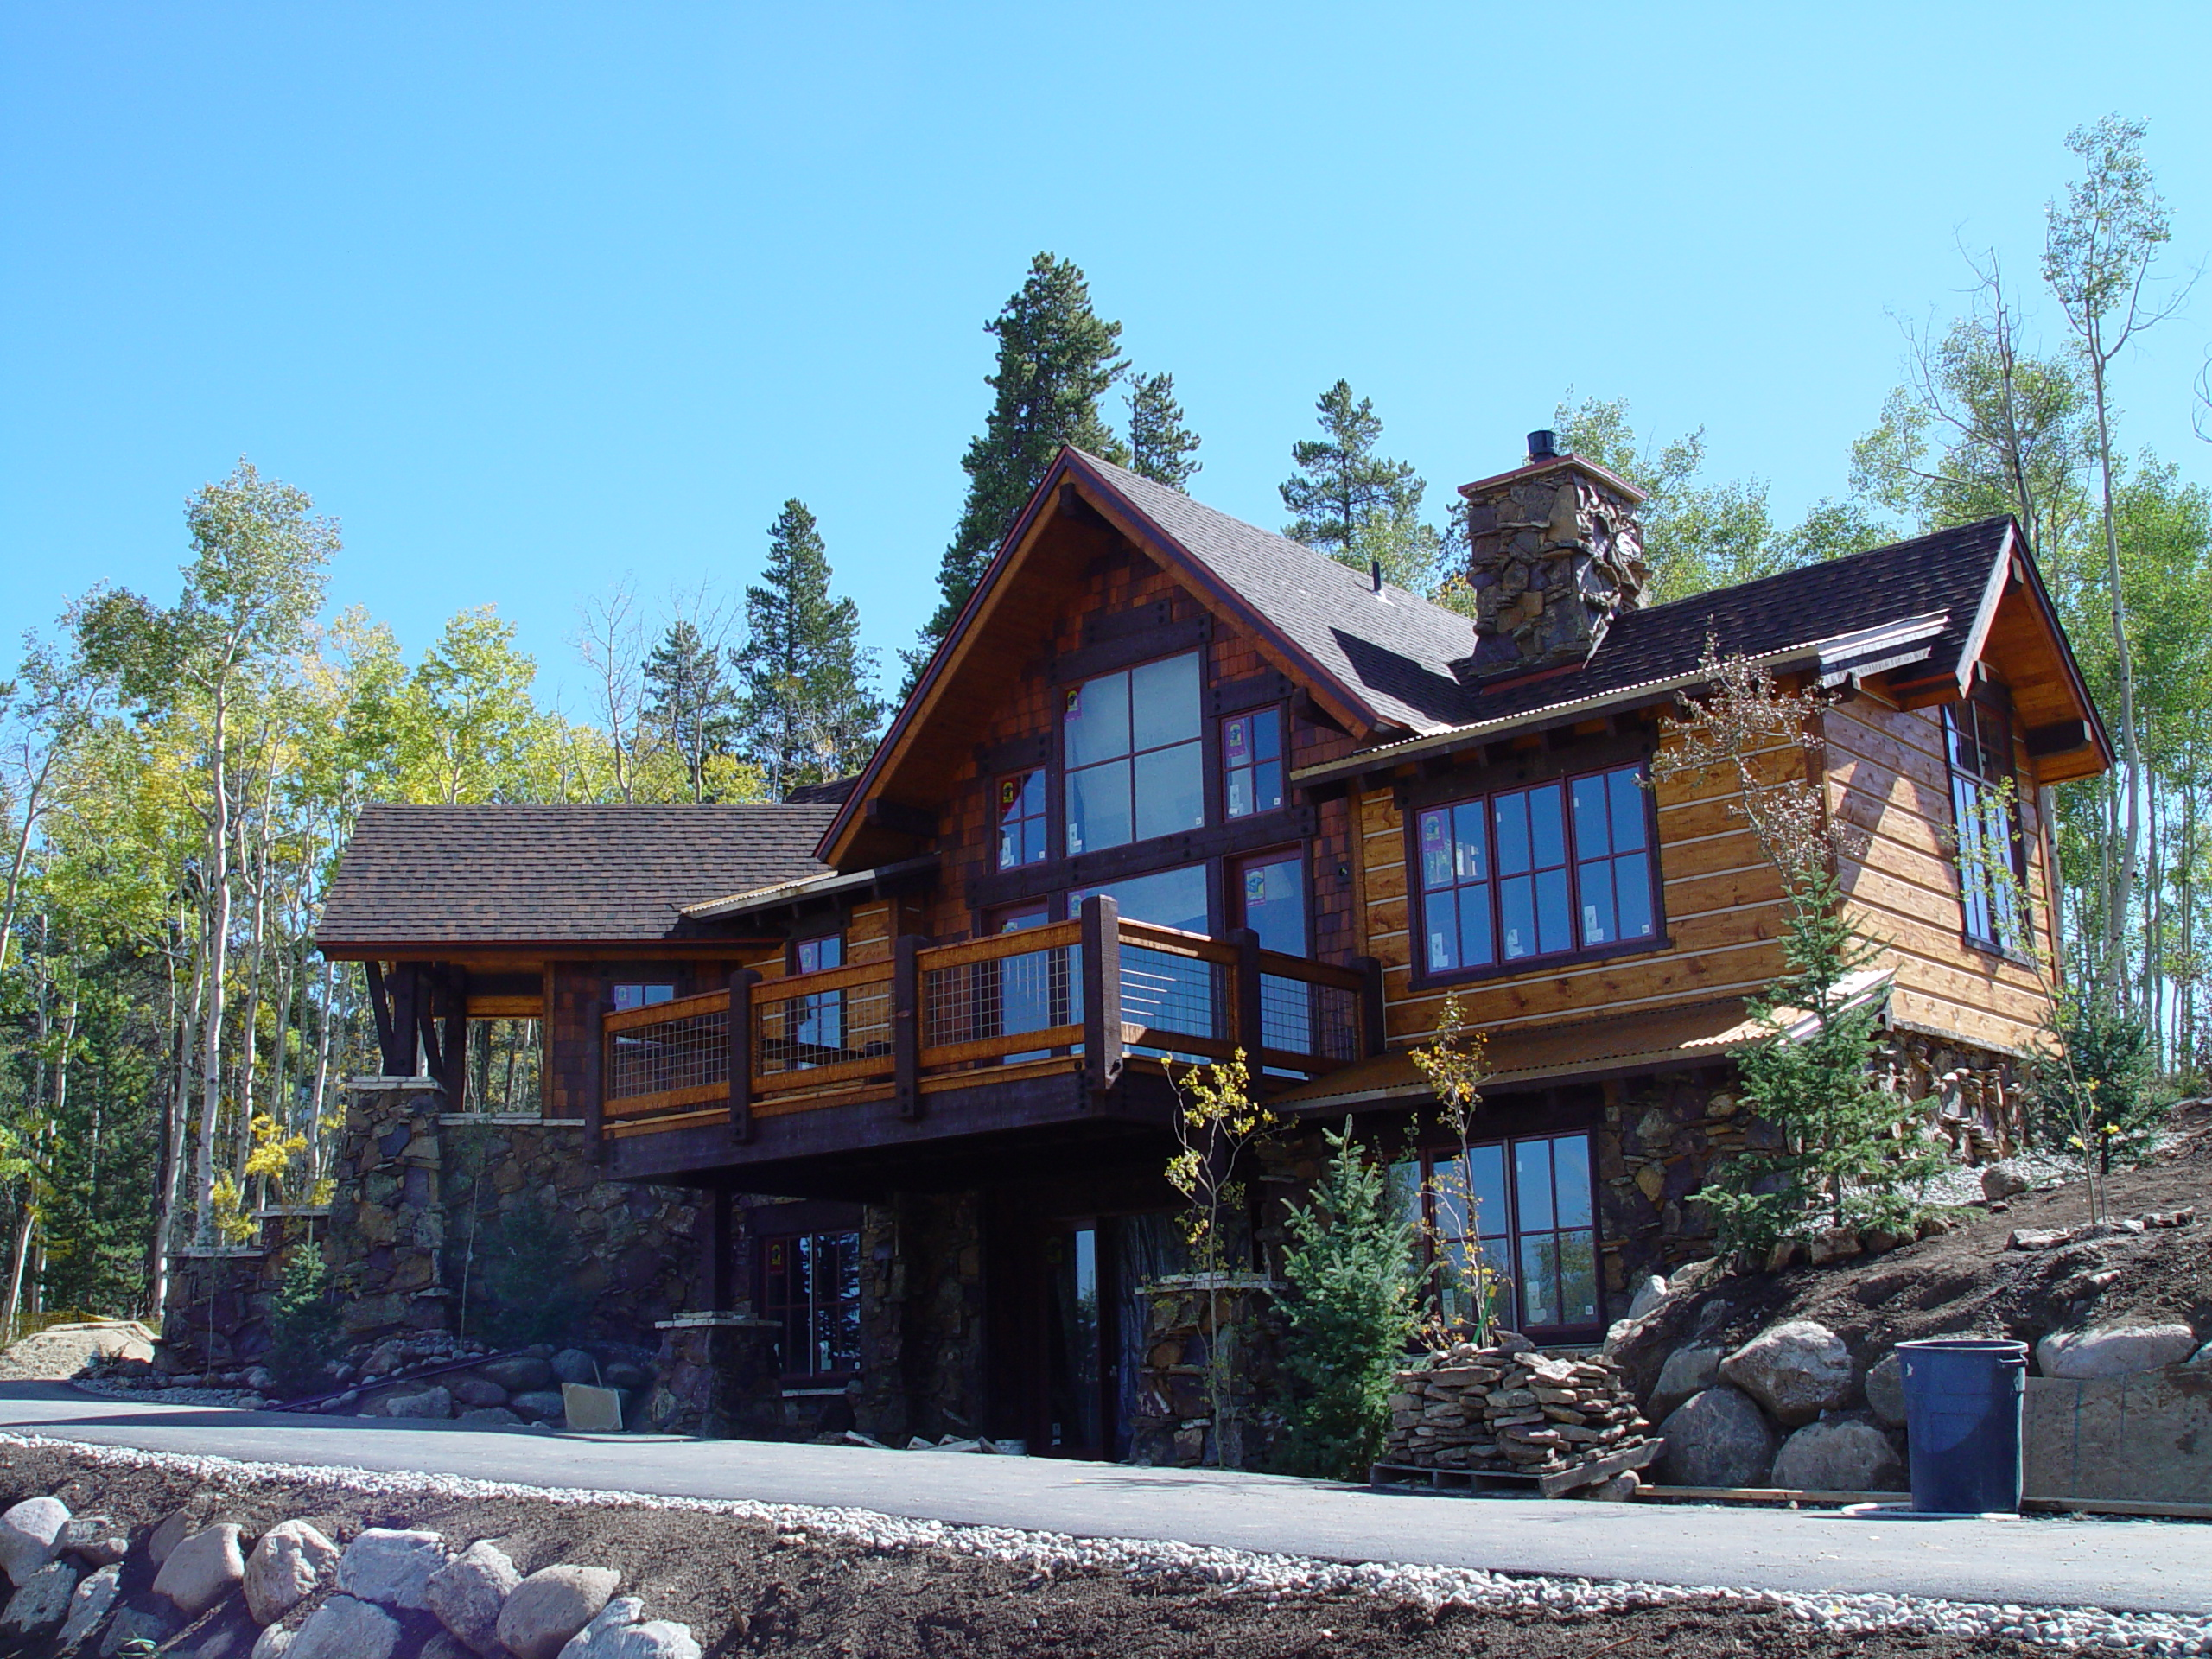 3 bed 3 5 bath eagles nest golf course sub home 1 195 500 for Colorado mountain house